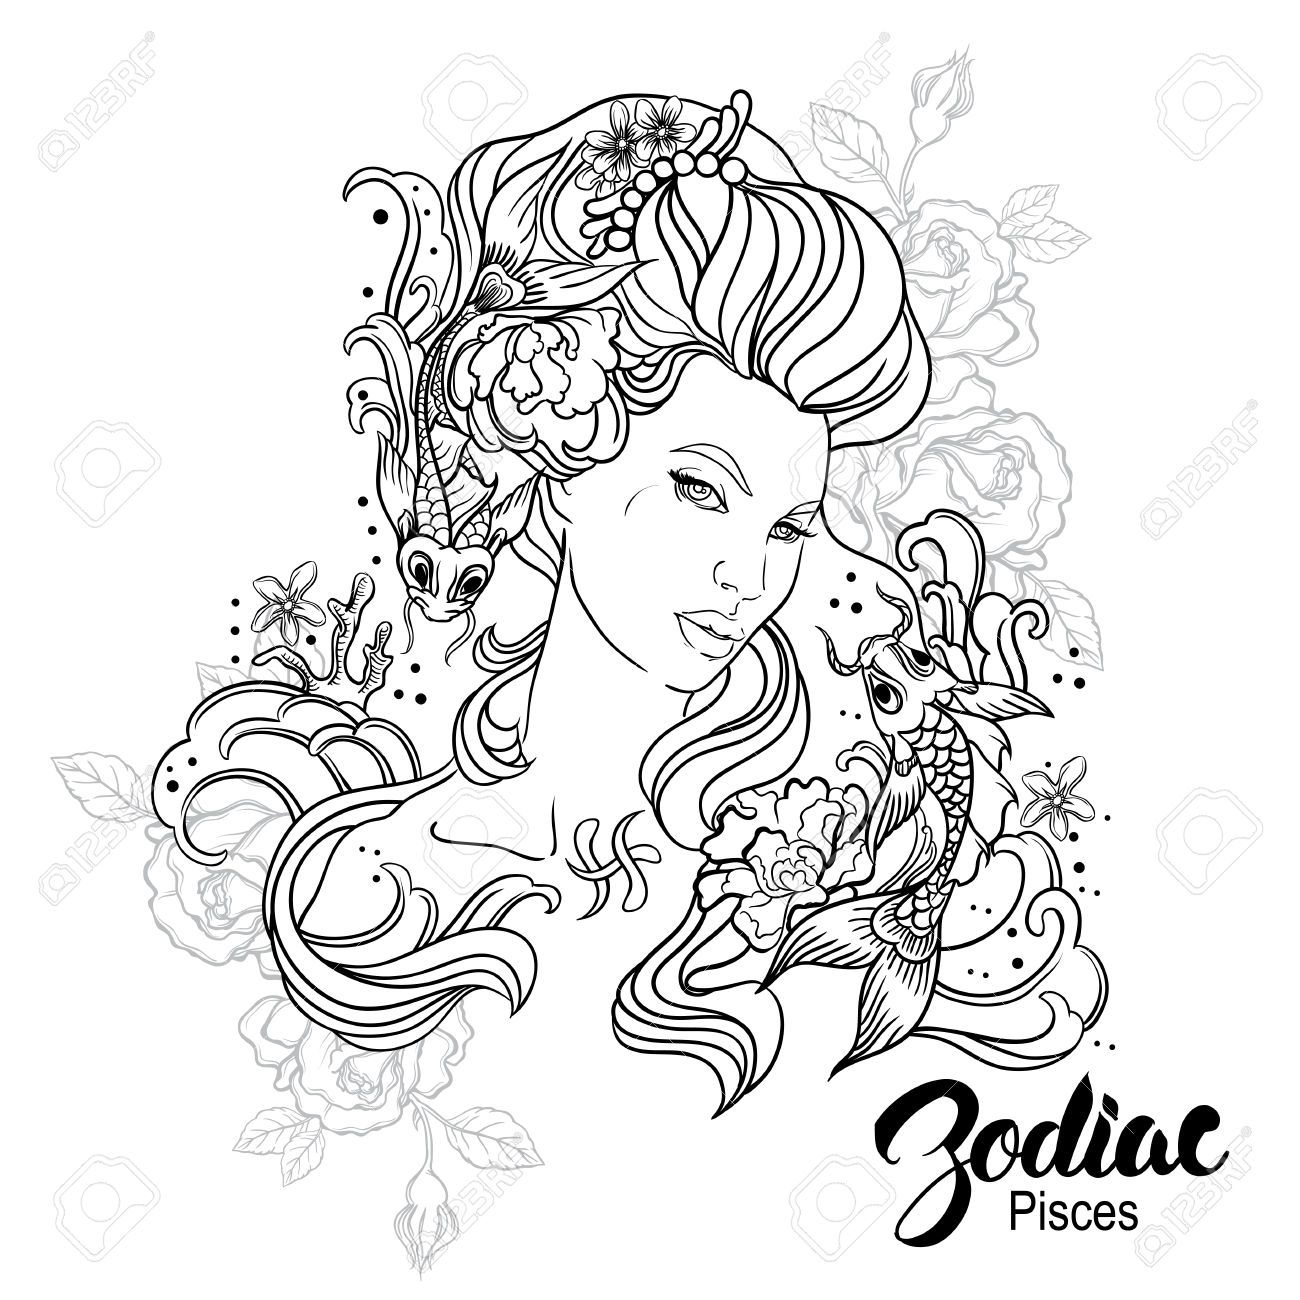 Pin by leanne maher on crazy hair colouring pages pinterest